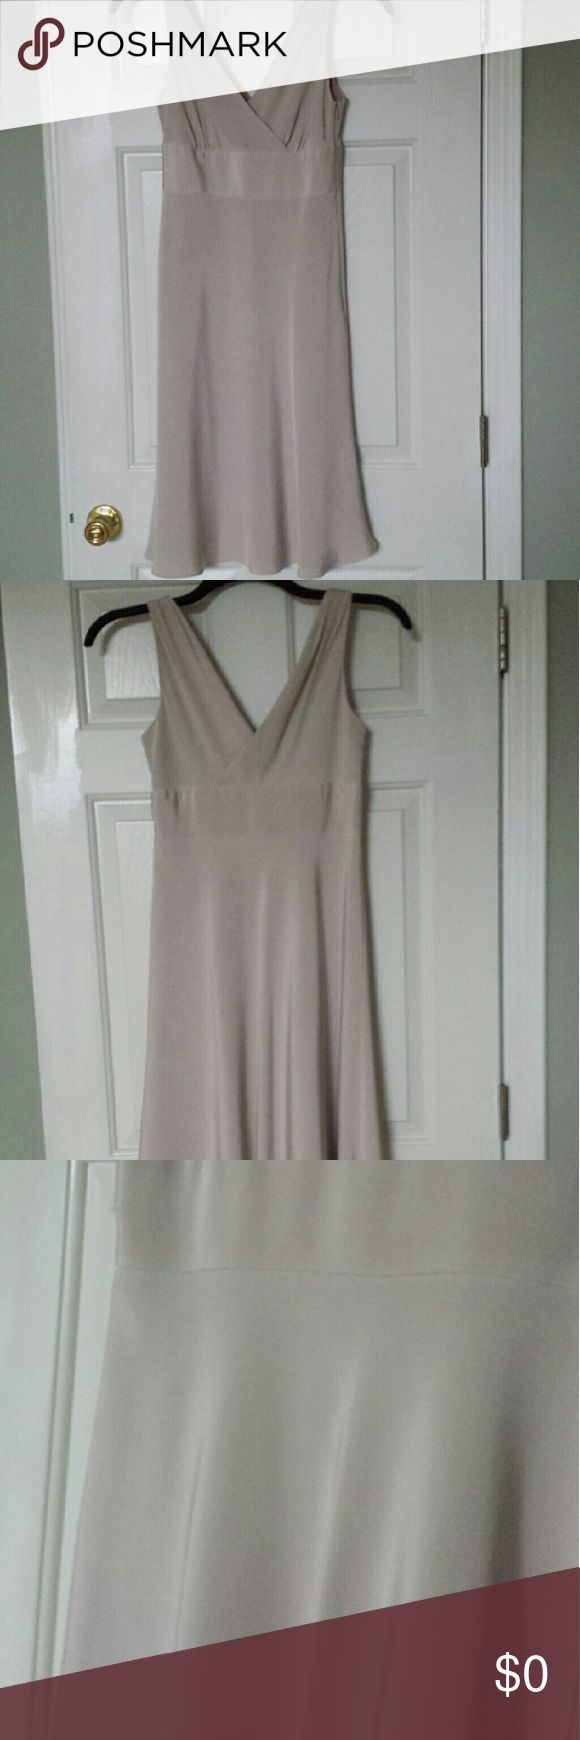 Beautiful Silk JCrew dress Simple yet elegant this dress would be perfect for a night out or a formal event. Gorgeous beige color, best rep in pics 1-2. Double vneck. 100% silk with polyester lining. Beautiful sheen in the light. Side zipper closure. J. Crew Dresses